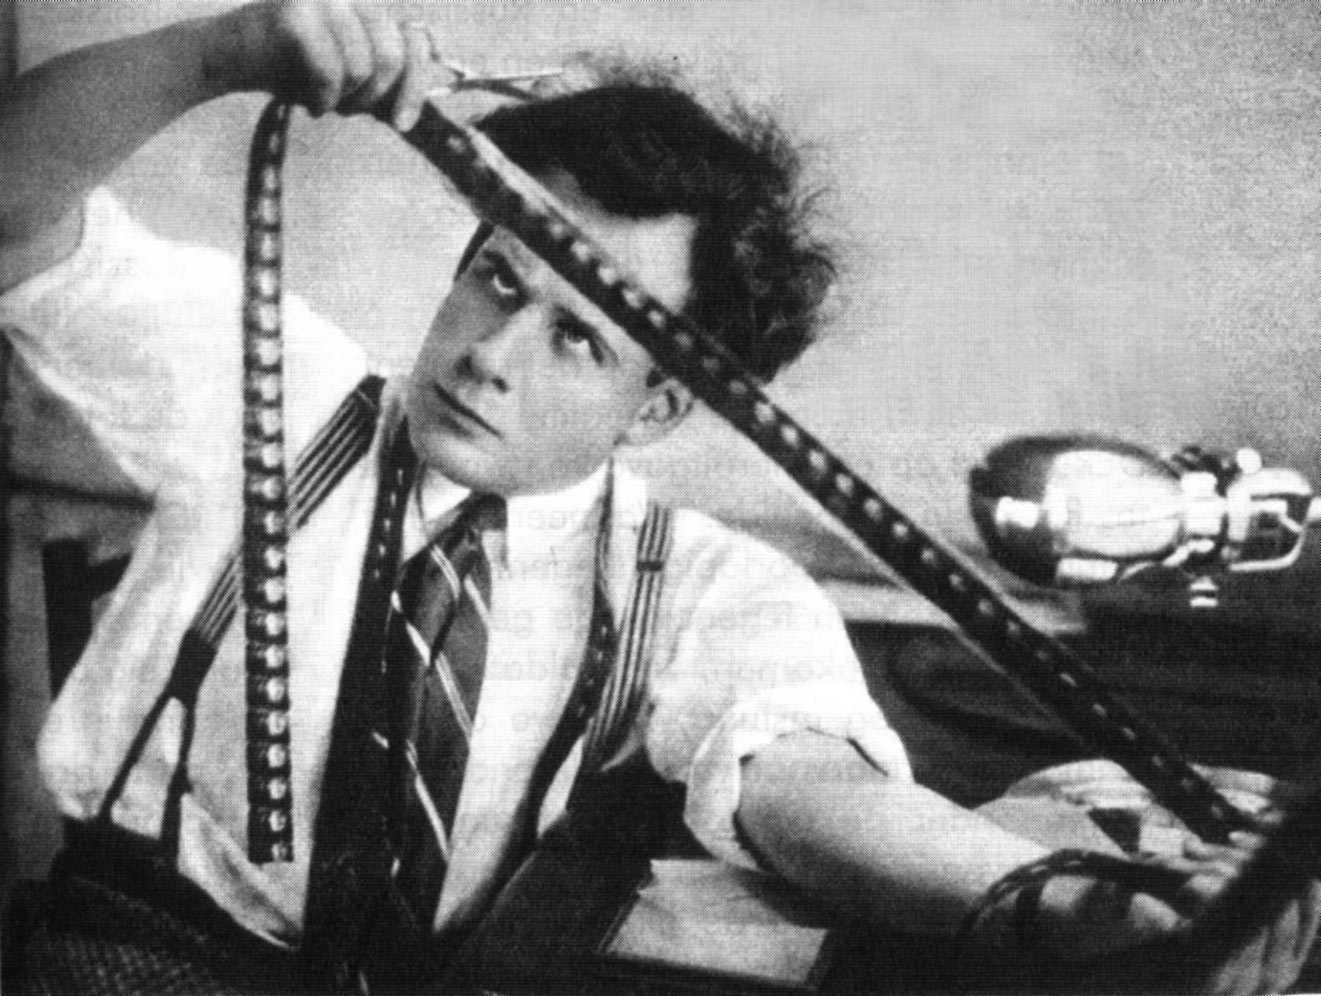 7 Art Cinema | Serguei Mikhailovich Eisenstein - Сергей Михайлович Эйзенштейн | 1898 - 1948 | Longs métrages, 1924 : La Grève - (Стачка («Чертово гнездо», «История стачки»)) - (Strike), 1925 : Le Cuirassé « Potemkine » (Броненосец «Потёмкин» («1905 год»)) - (The Battleship Potemkin), 1927 : Octobre - (Октябрь («Десять дней, которые потрясли мир»)) - (October: Ten Days That Shook the World), 1929 : La Ligne générale (ou L'Ancien et le Nouveau) (Старое и новое («Генеральная линия»)) - (The General Line aka Old And New), 1932 : Que Viva Mexico! - (незаконченный фильм «Да здравствует Мексика!») -(¡Que viva México!), 1935 : Le Pré de Béjine - (Бежин луг) -(Bezhin Meadow), 1938 : Alexandre Nevski - (Александр Невский) - (Alexander Nevsky), 1944 : Ivan le terrible, Partie I - (Иван Грозный (1-я серия)) - (Ivan The Terrible, Part I), 1946 : Ivan le terrible, Partie II (Иван Грозный (2-я серия, сказ второй — «Боярский заговор»)) - (Ivan The Terrible, Part II) | Courts métrages, 1923 : Le Journal de Gloumov, 1930 : Romance sentimentale (France), 1934 : Death Day | Serguei Mikhailovich Eisenstein 1898 - 1948 | Photographie